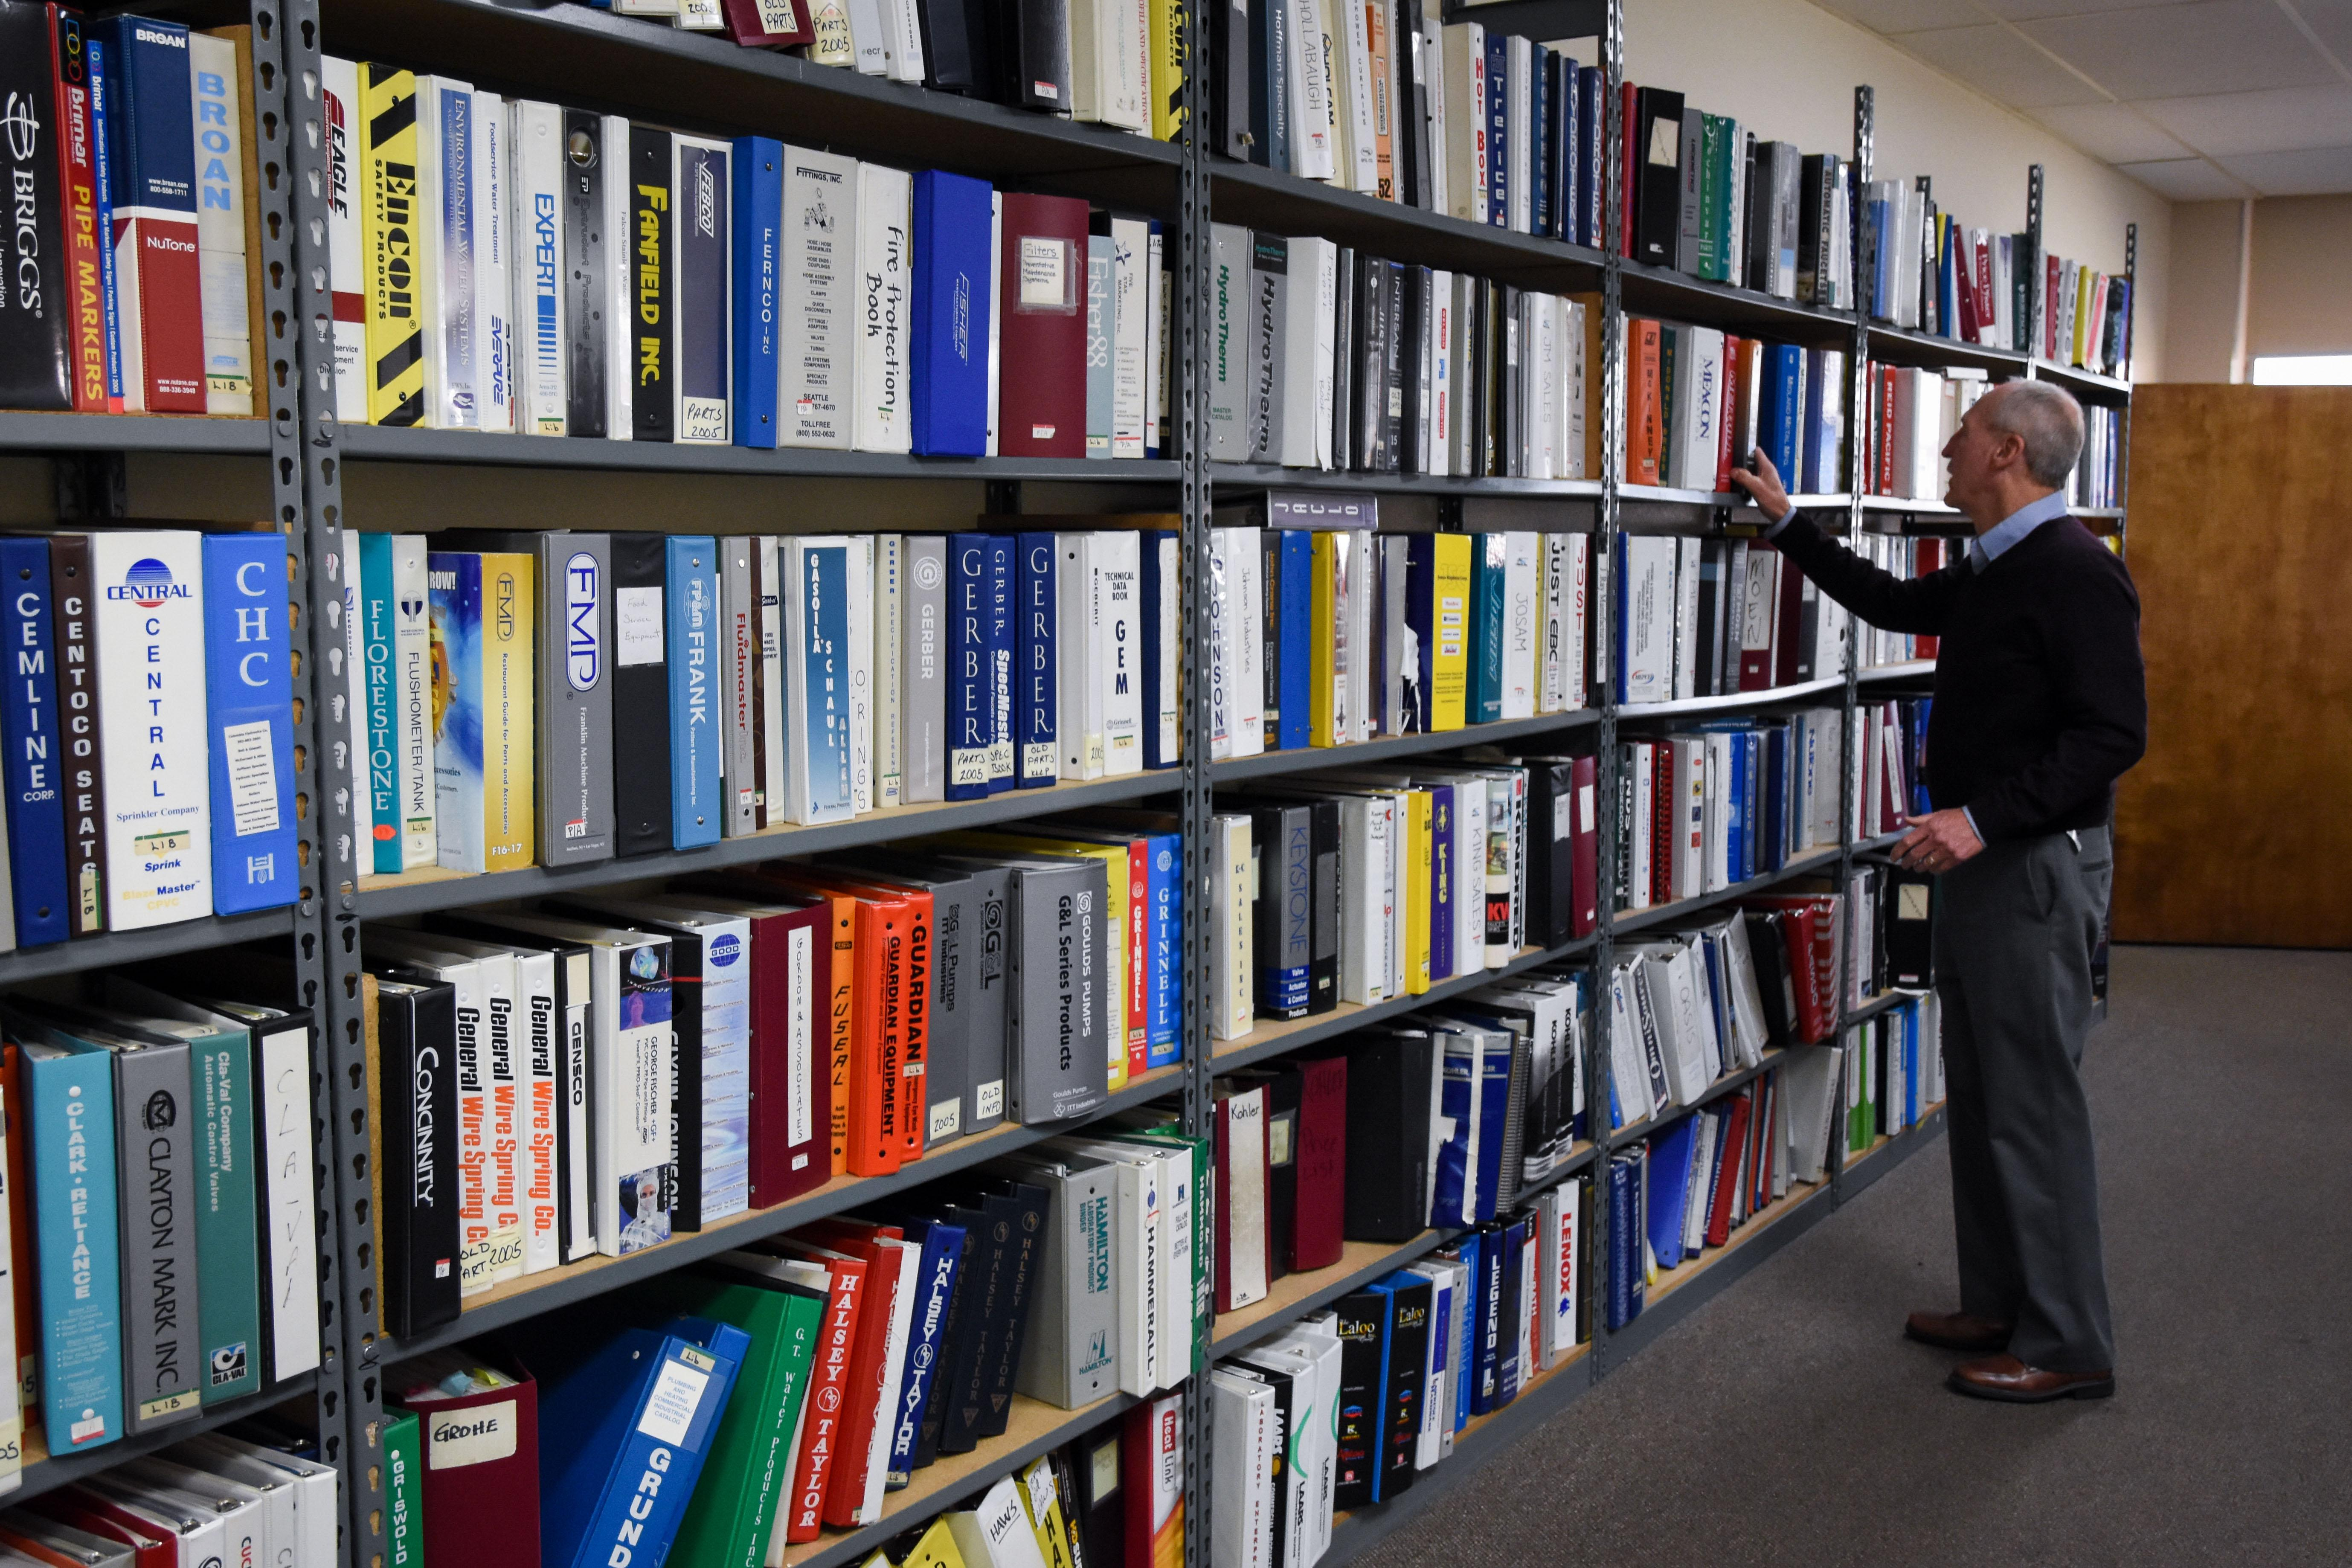 Our resource library